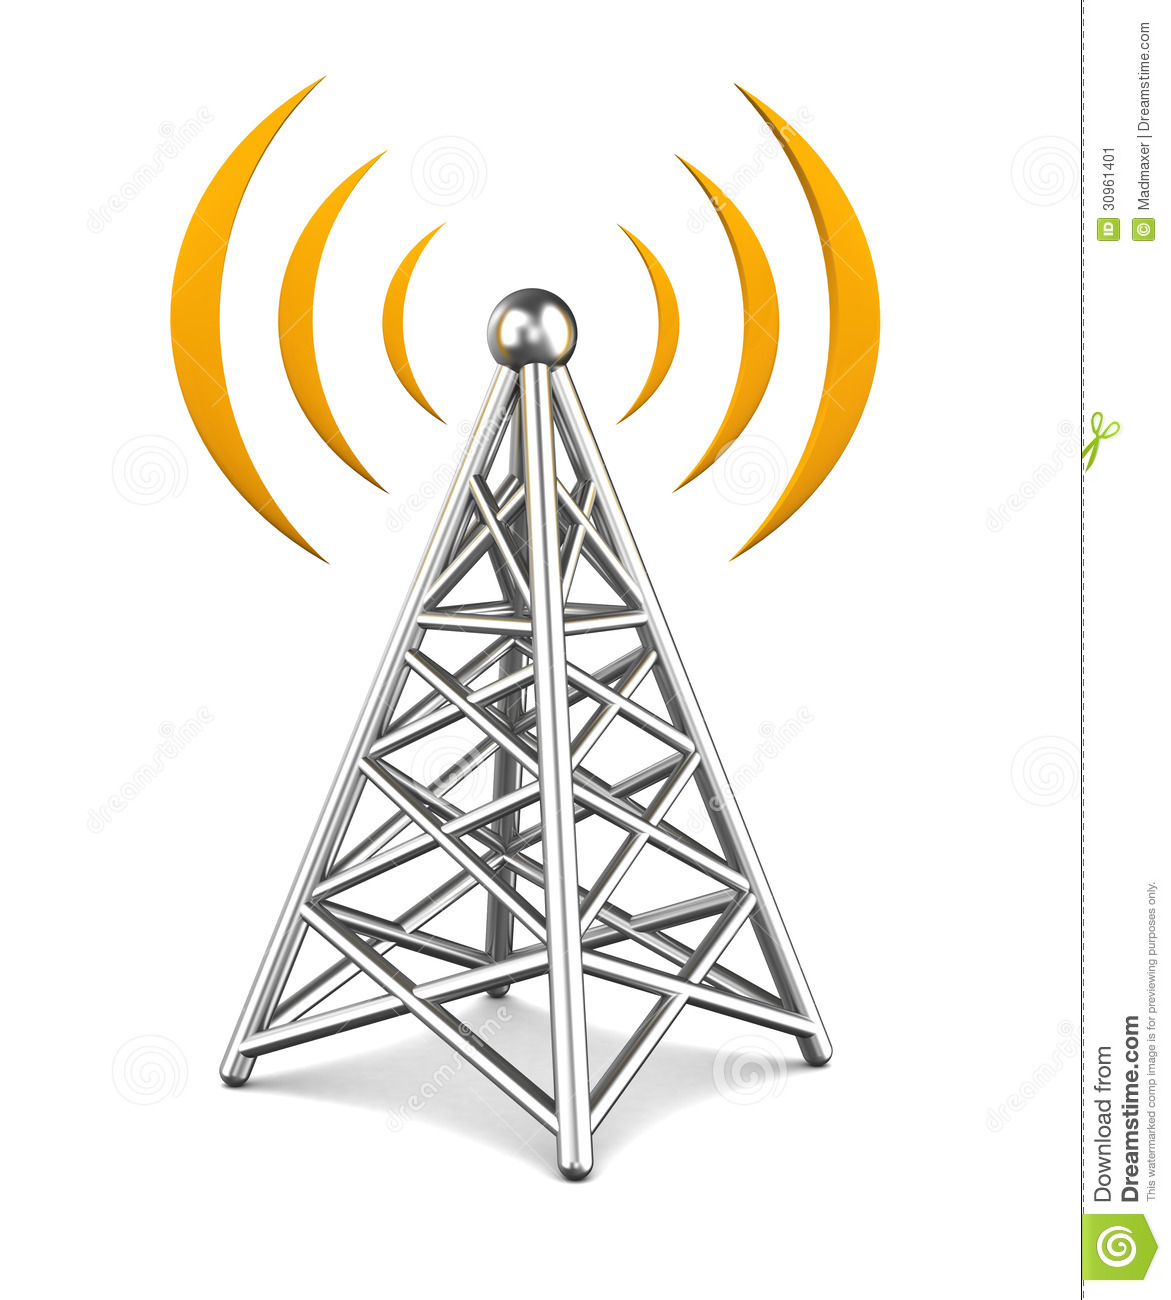 Communication Tower Clipart - Clipart Suggest